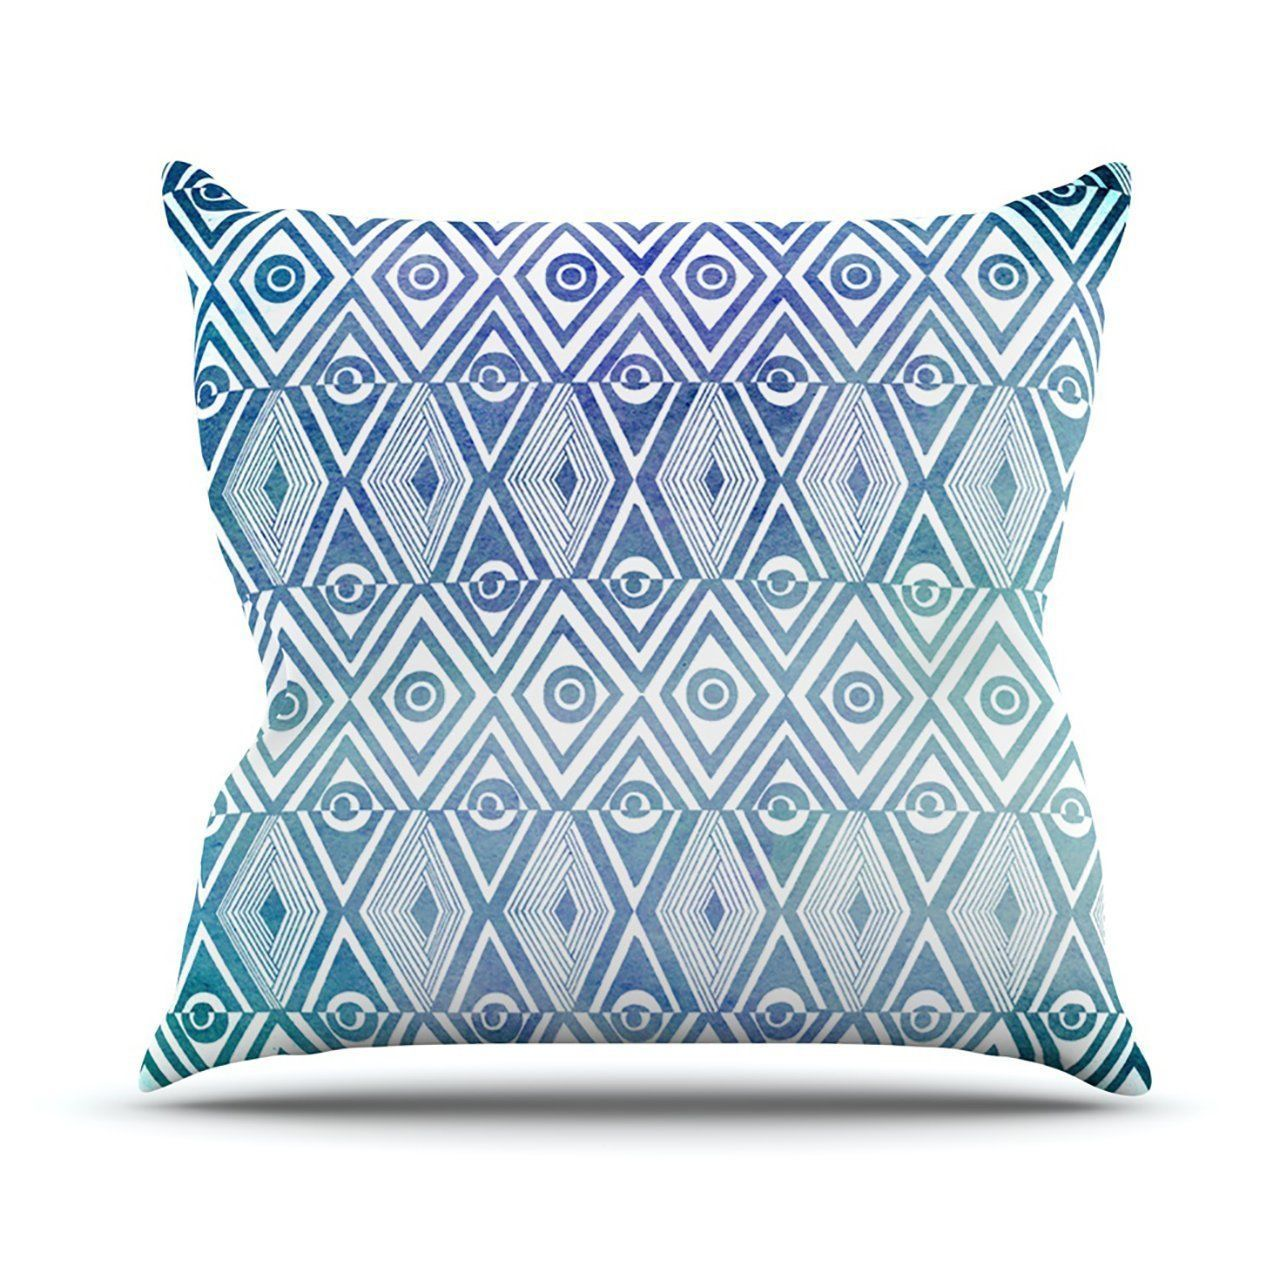 "Kess InHouse Pom Graphic Design ""Tribal Empire"" Outdoor Throw Pillow, 18 by 18-I"